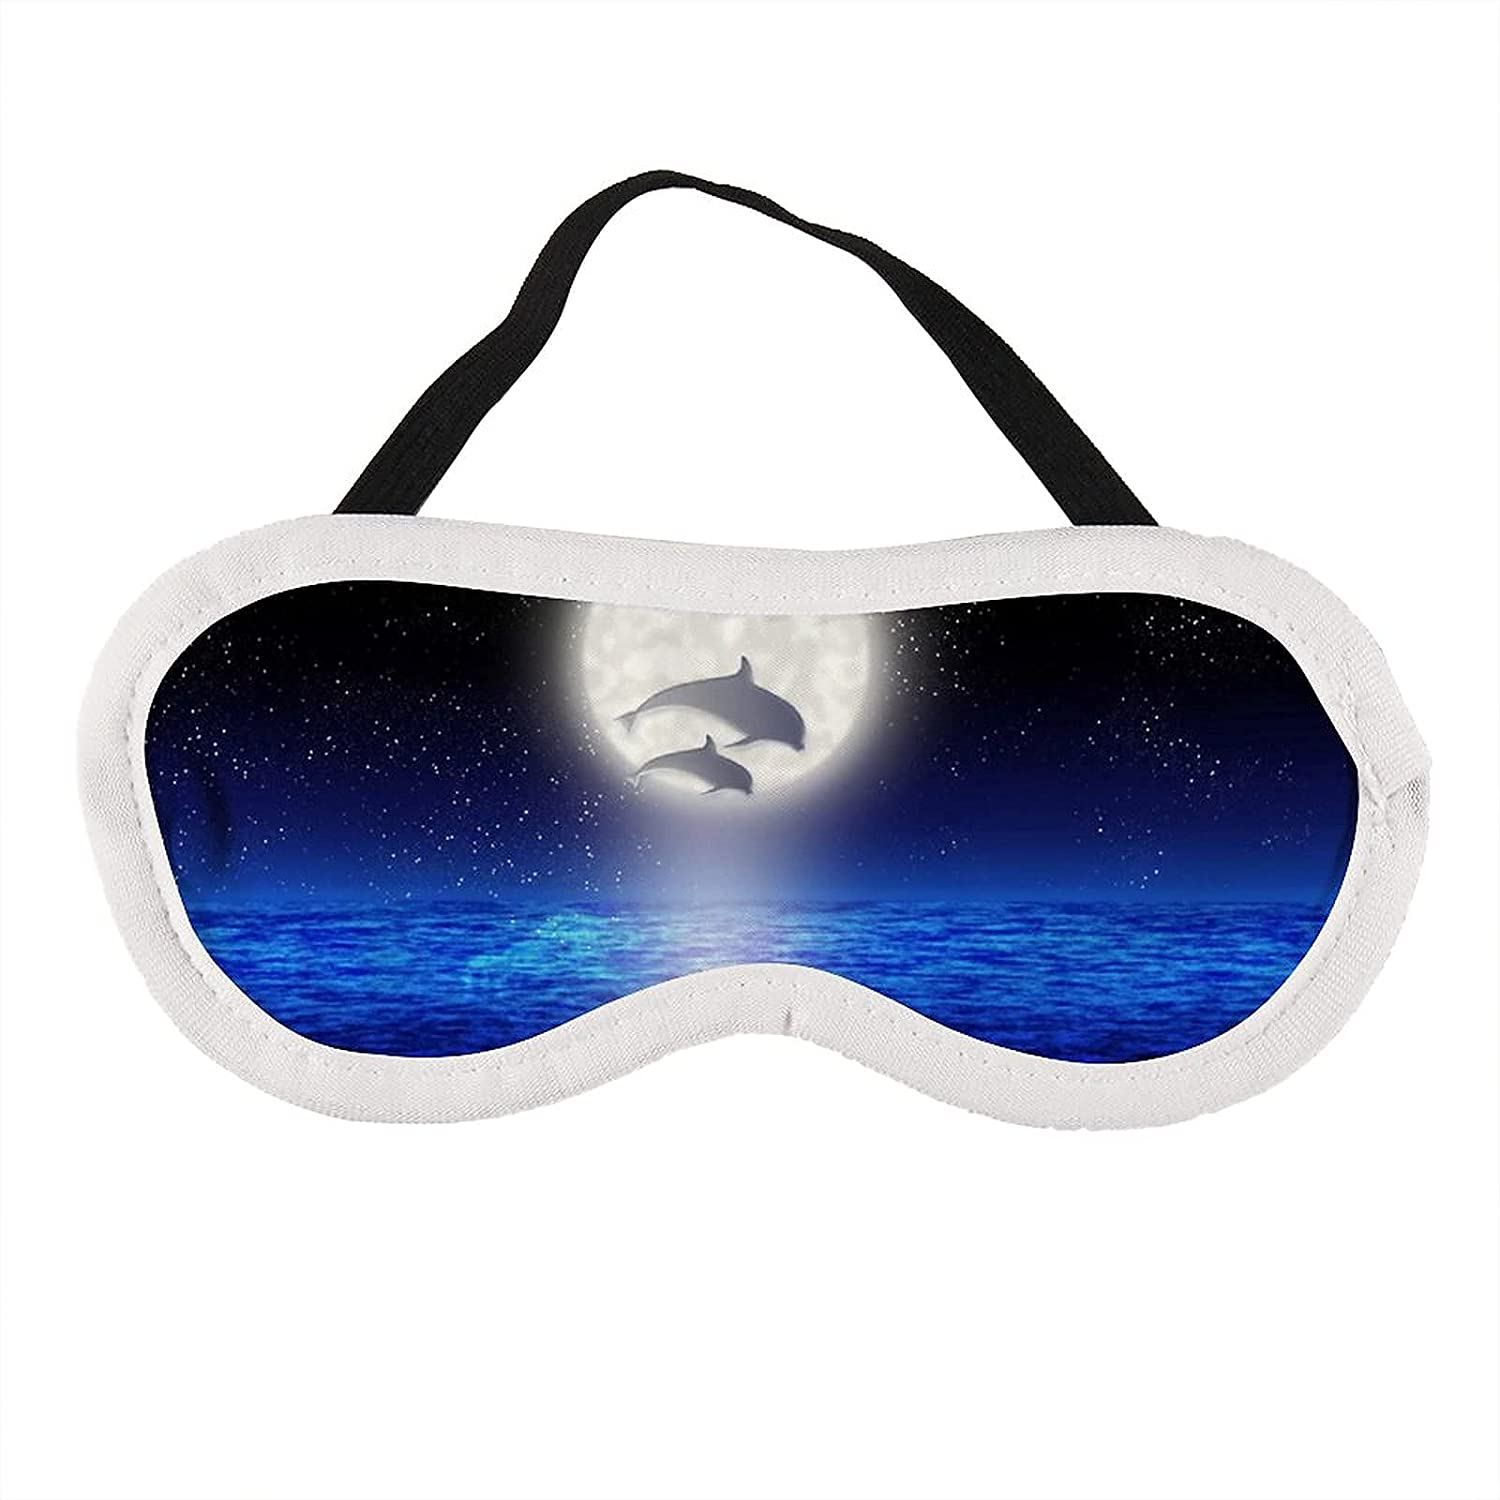 Dolphins Jump Out of The Sea Sale SALE% OFF Regular store Sleep Women for Eye Kids Girls Mask